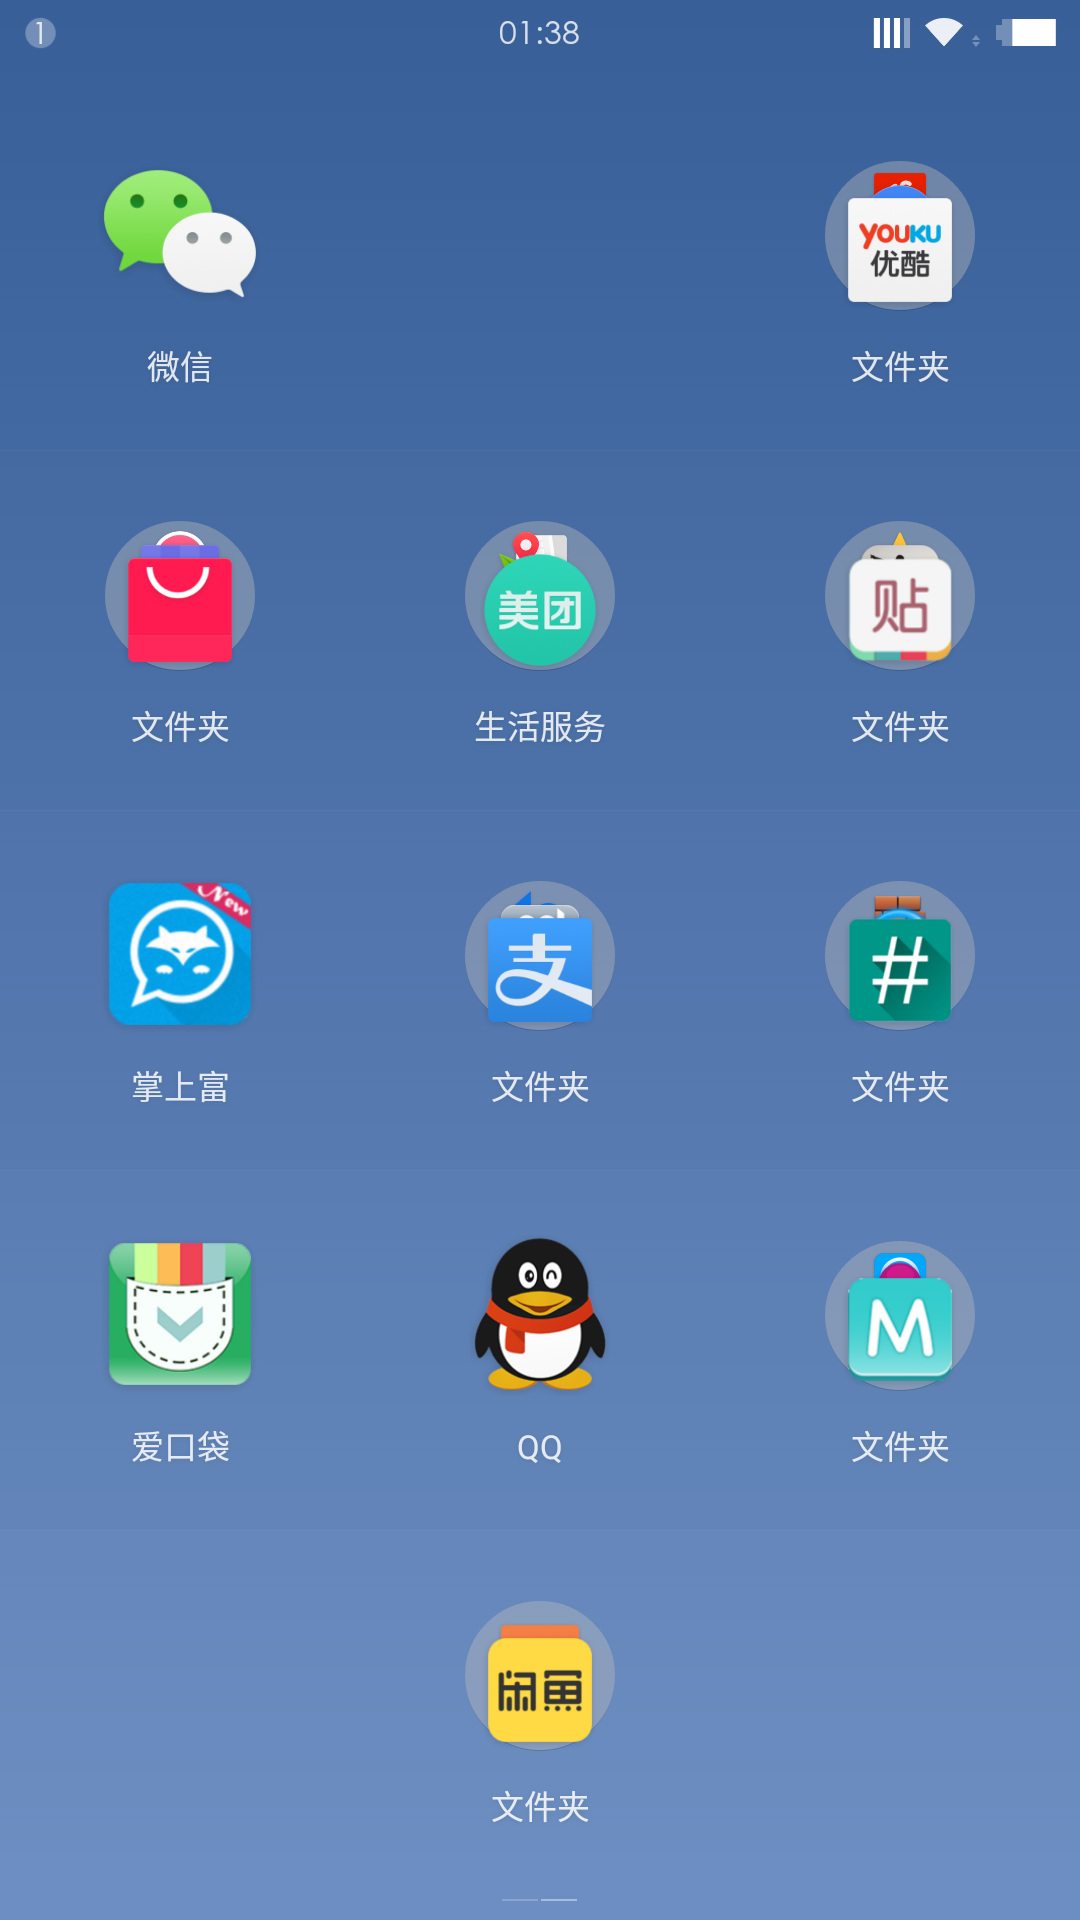 Screenshot_2015-08-23-01-38-48.png